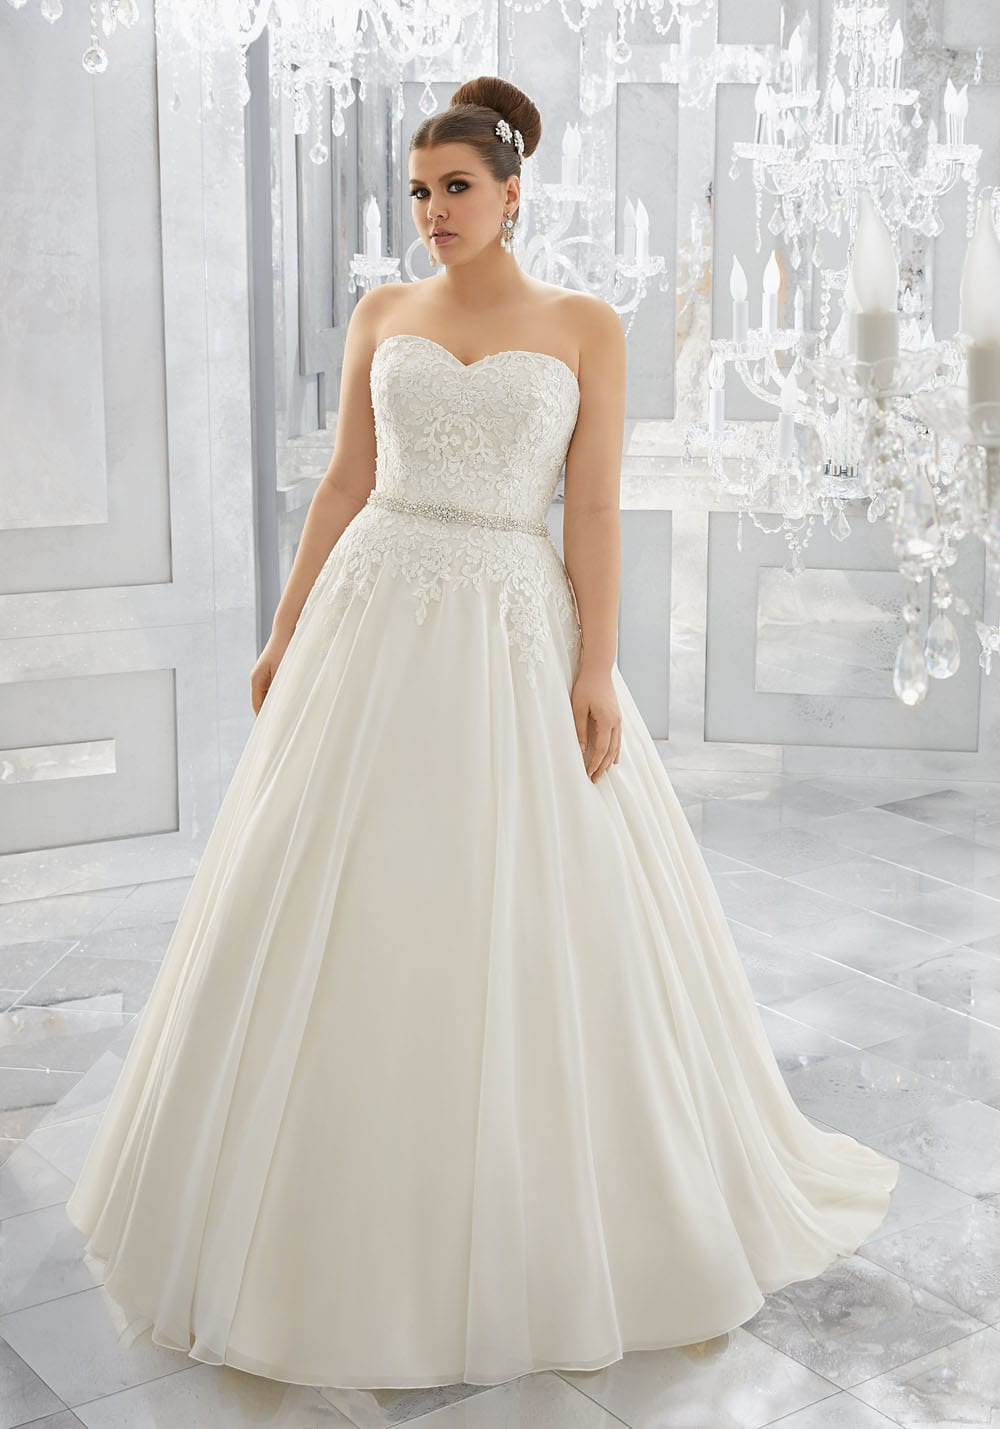 Wedding dresses sacramento diamond bridal gallery julietta collection plus size collection ombrellifo Images